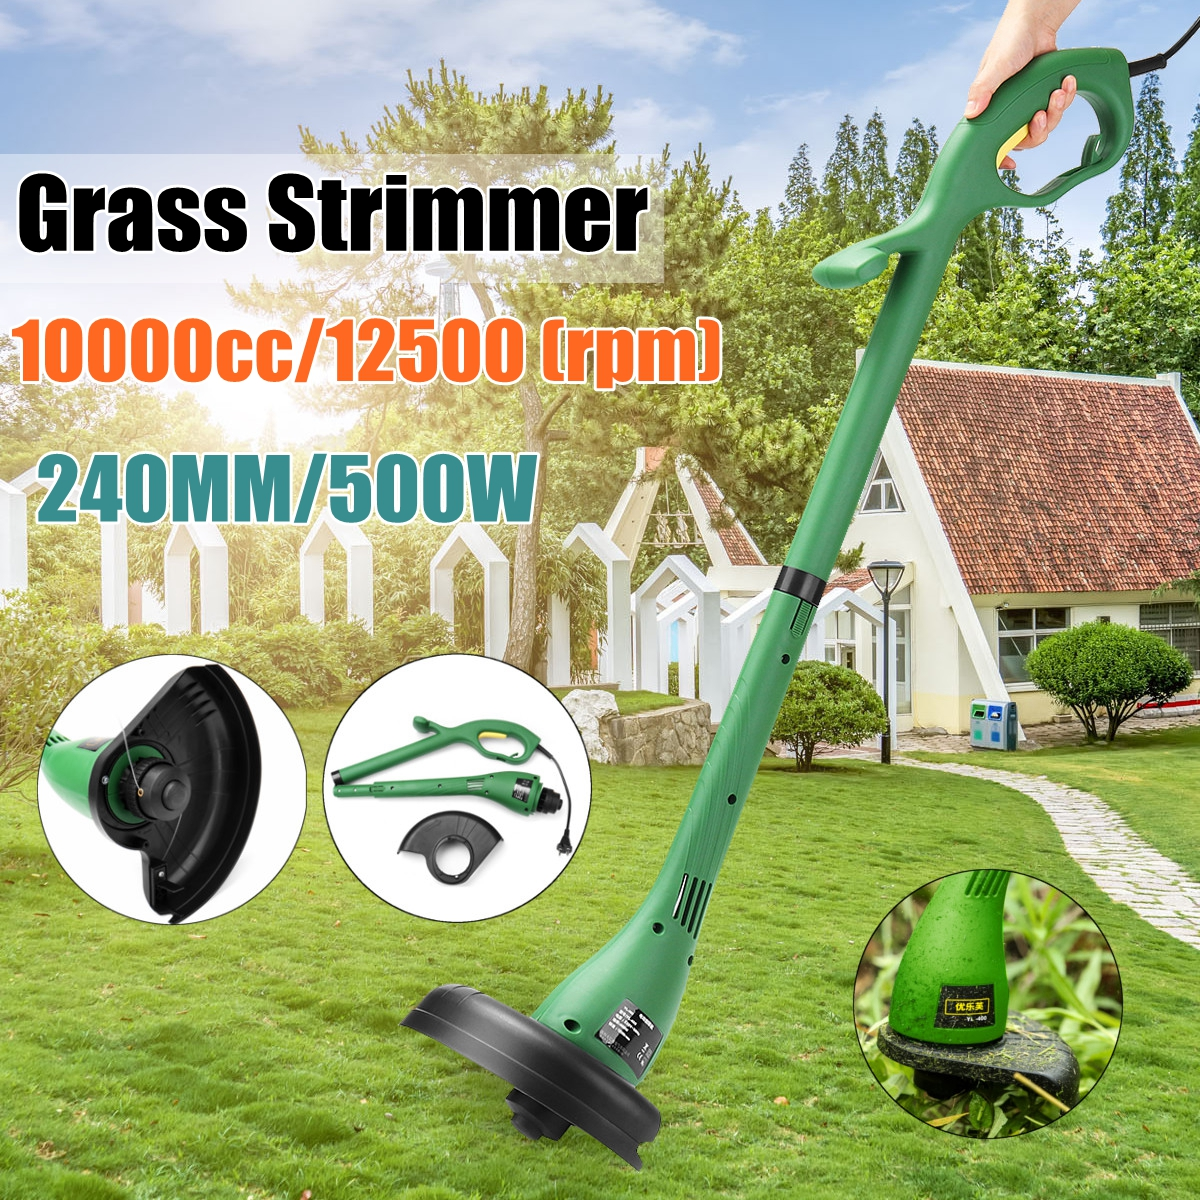 Home Electric Lawn Mower 500W 12500 r/min Portable Garden Lawn Mower Weeding Machine Grass Trimmer Courtyard Pruning Tools mower lawn cut irrigation mower rice machine parts rotary cutters grass control